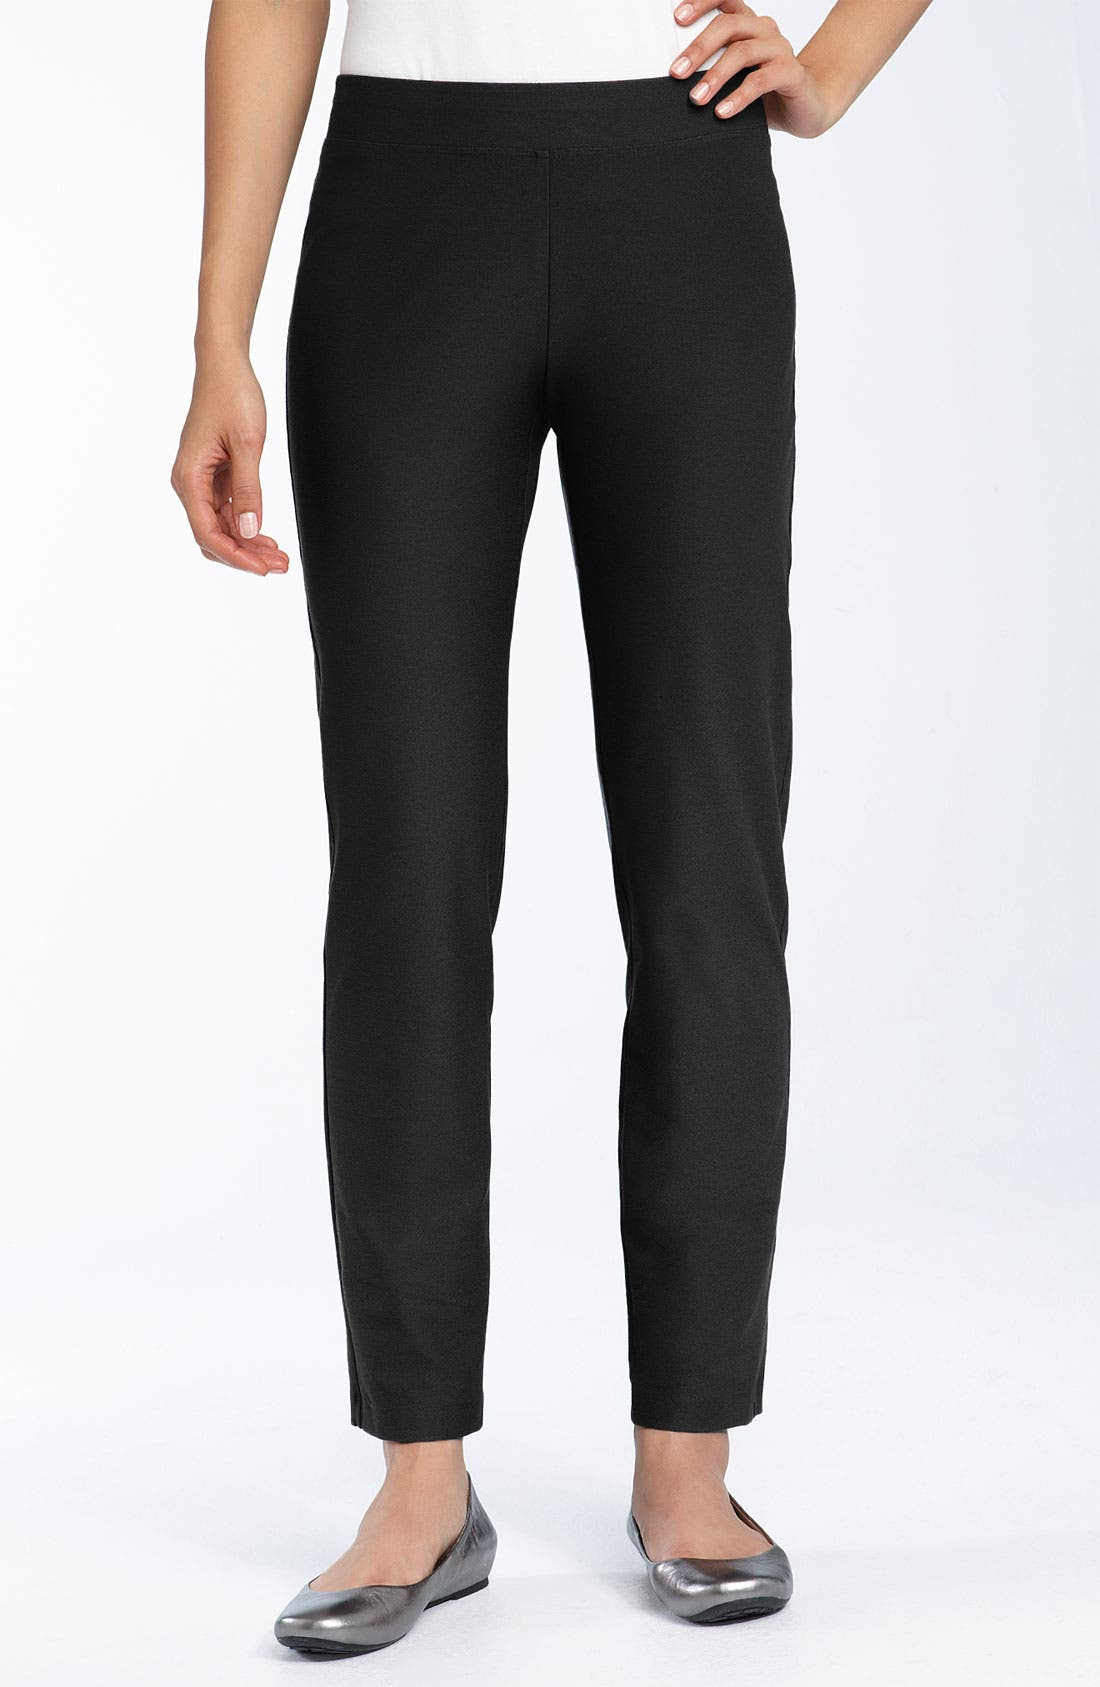 Alternate Image 1 Selected - Eileen Fisher Crepe Ankle Pants (Petite)